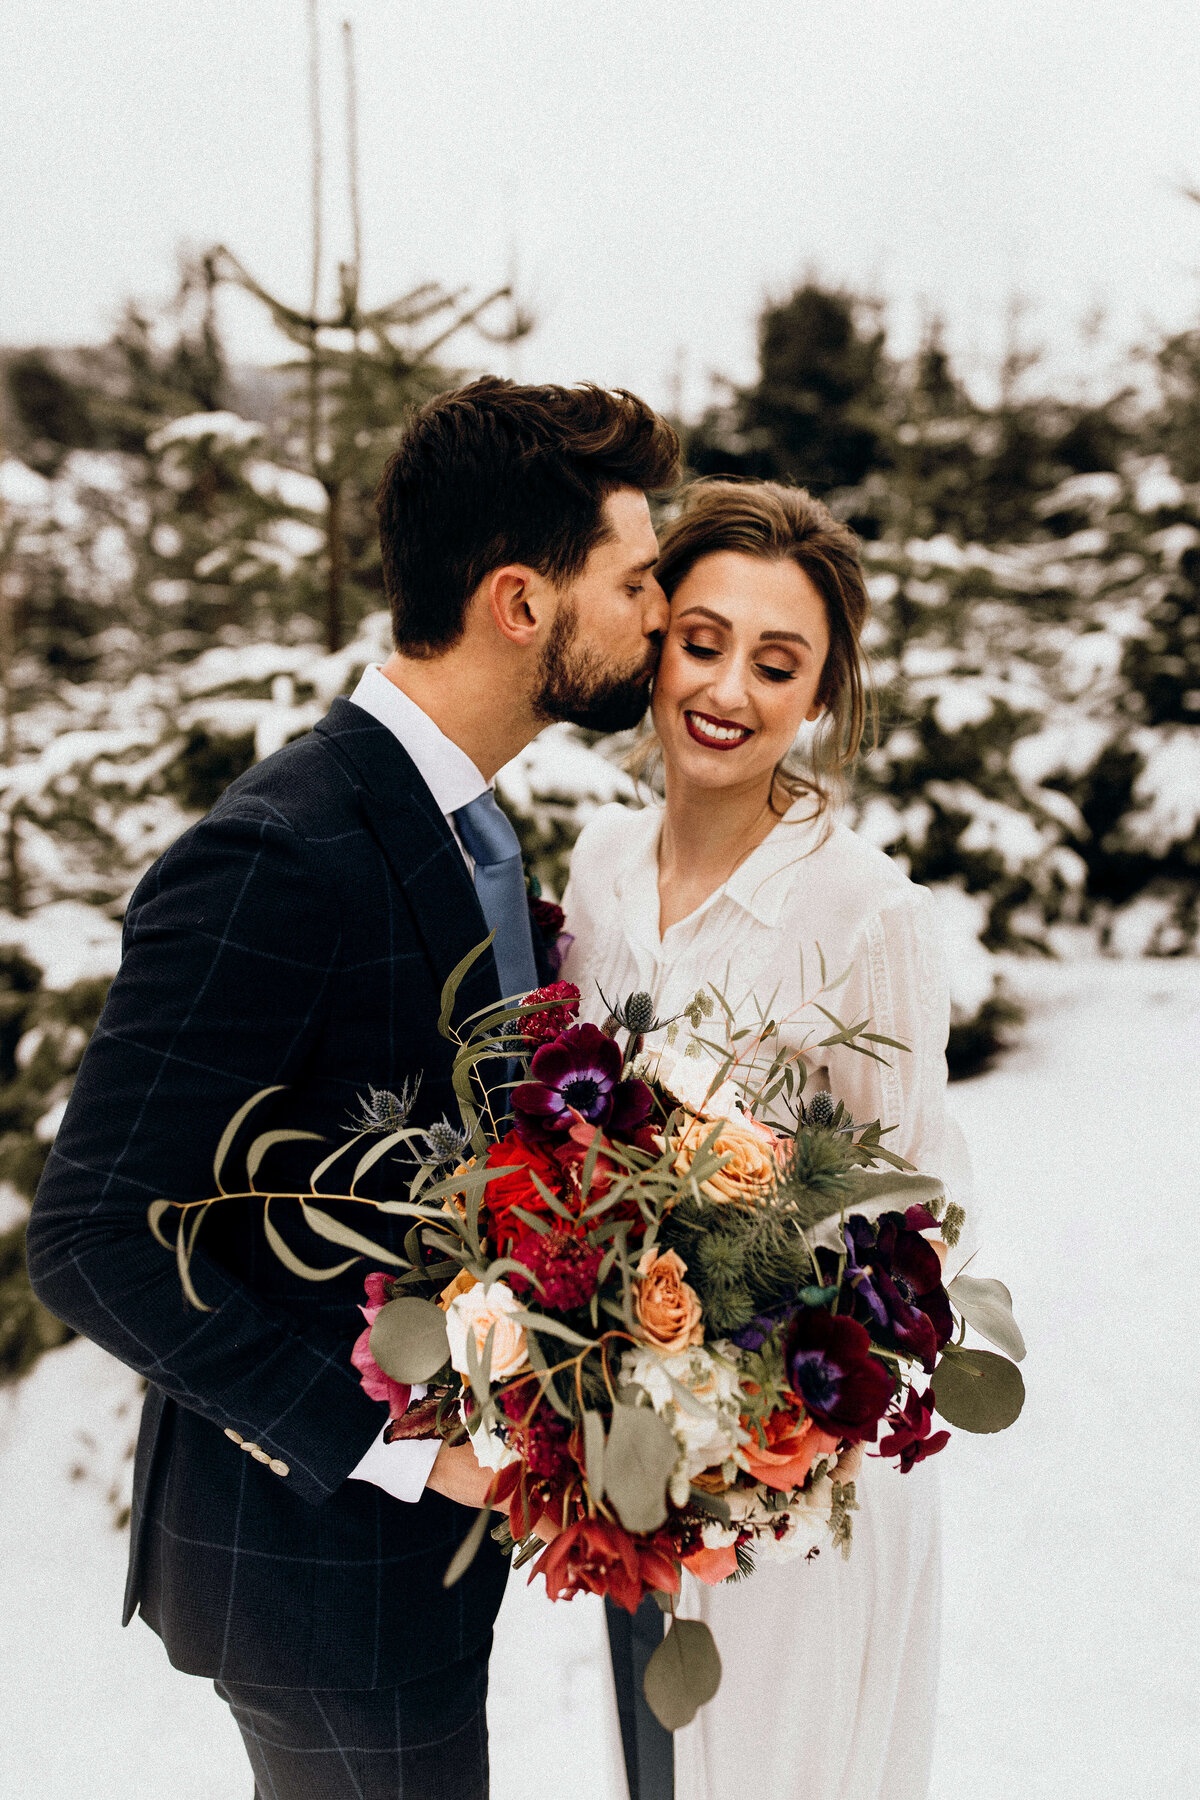 Styled Shoot - Winter Wonderland - Duitsland - 2019 2828